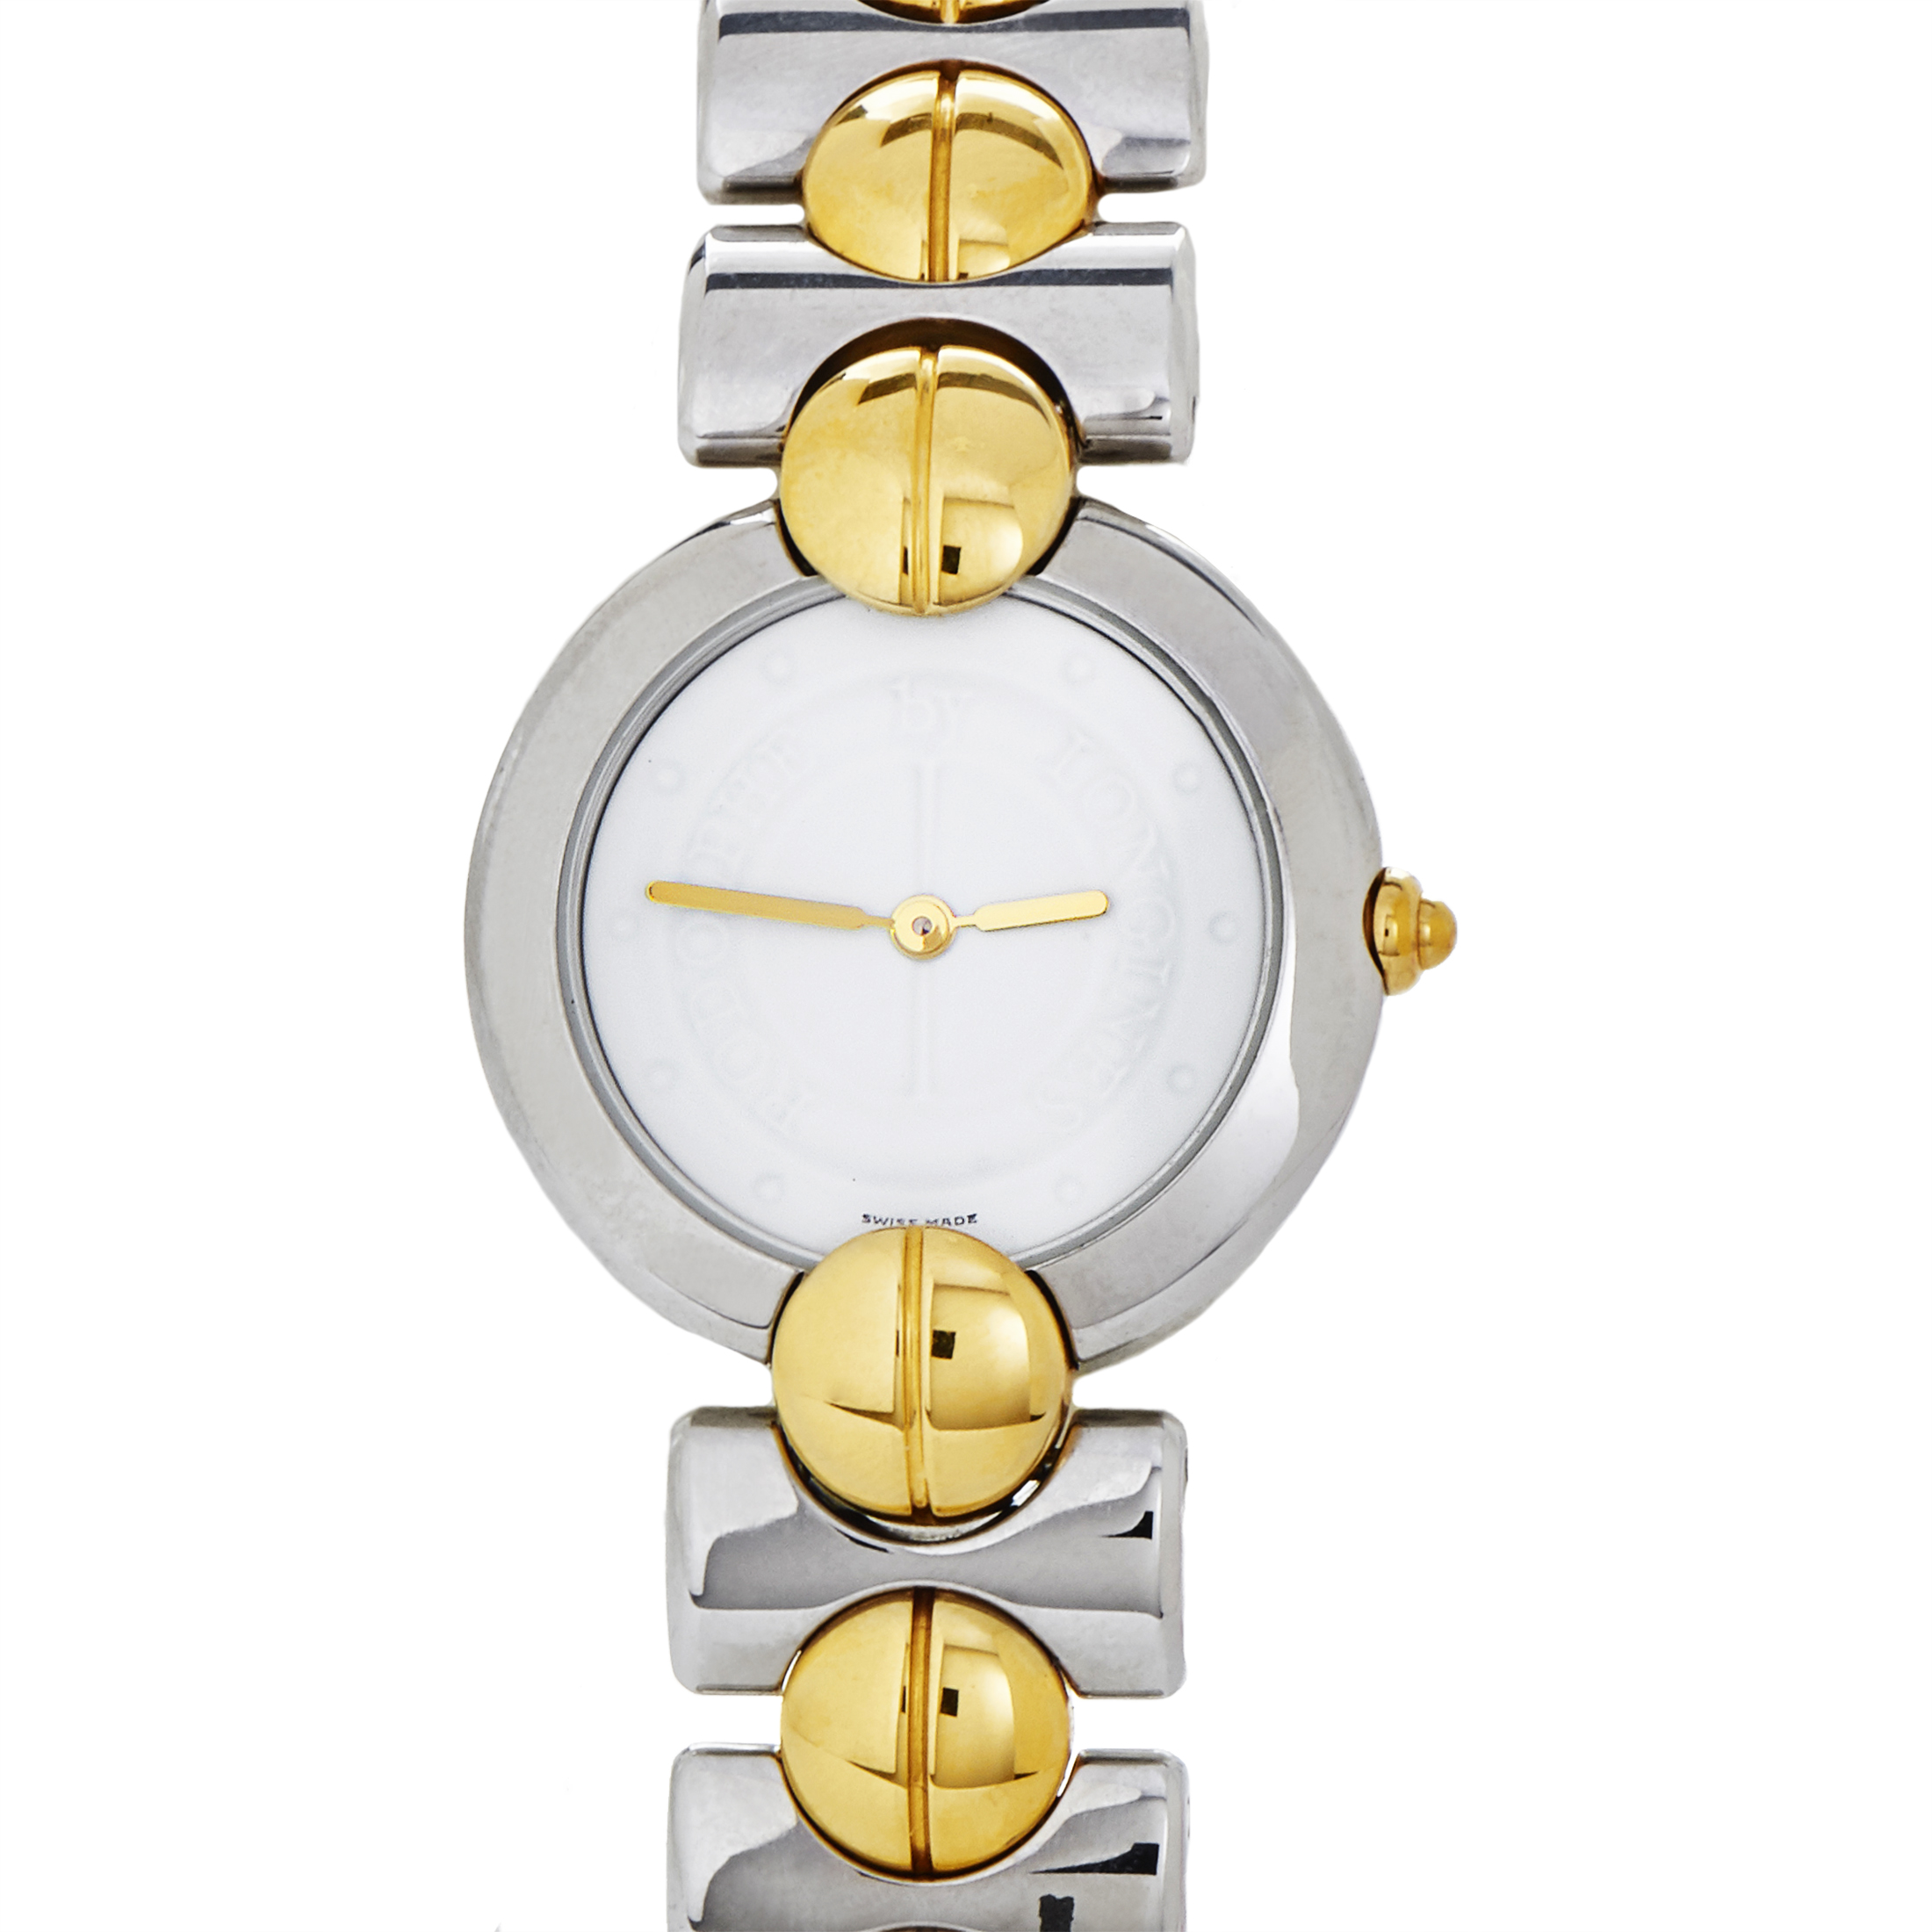 Rodolphe Women's Gold Plated Stainless Steel Quartz Watch L6.1056.3.18.6